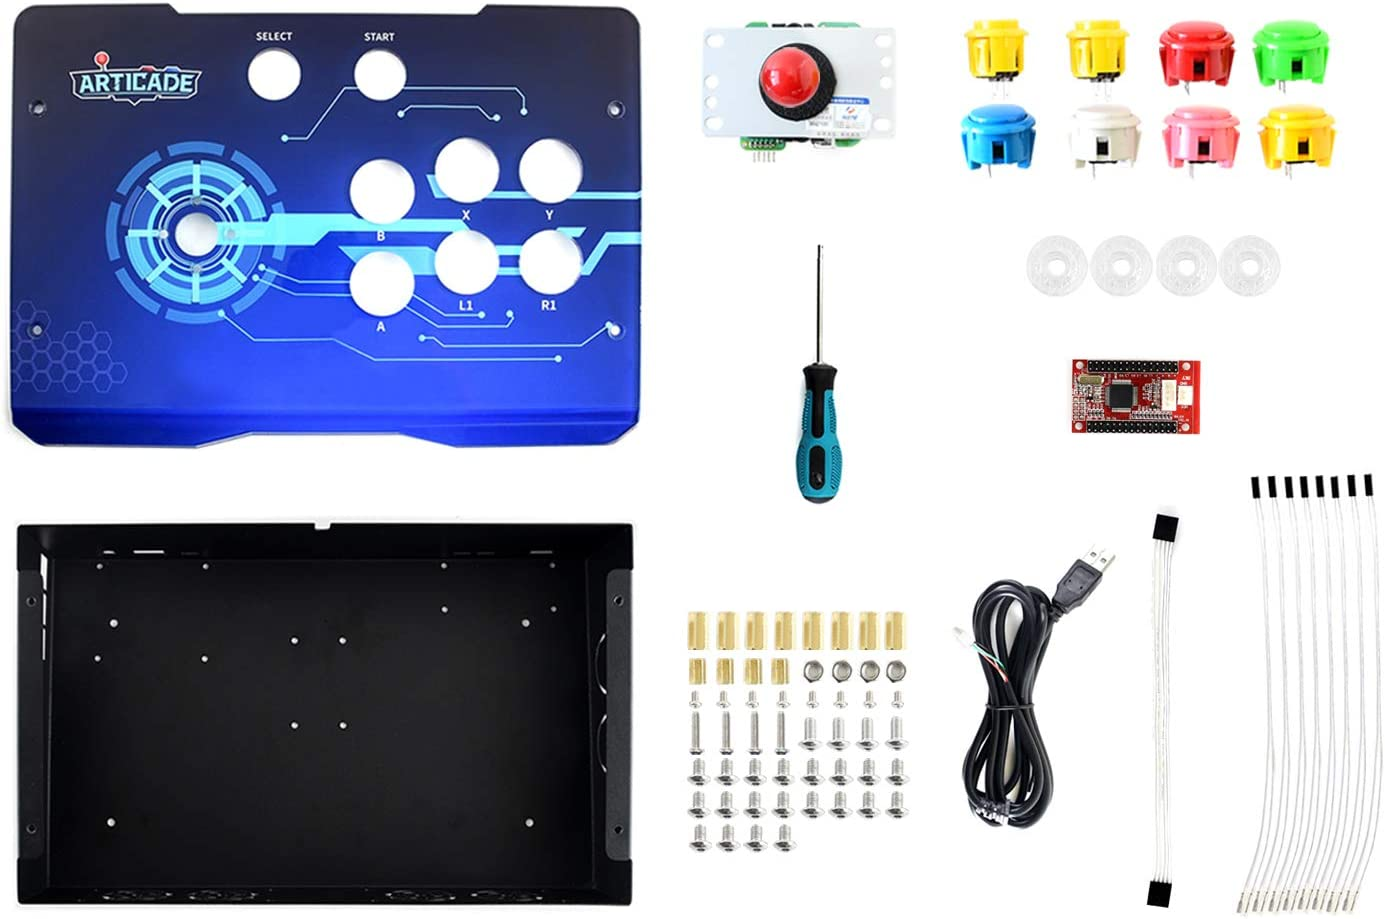 Waveshare Arcade-D-1P USB Arcade Control Box Supports Raspberry Pi PC Tablet 1 Player Smart TV Provides Classic Joystick and Colorful Buttons Driver Free Plug and Play UV Silk Print Acrylic Panel: Amazon.es: